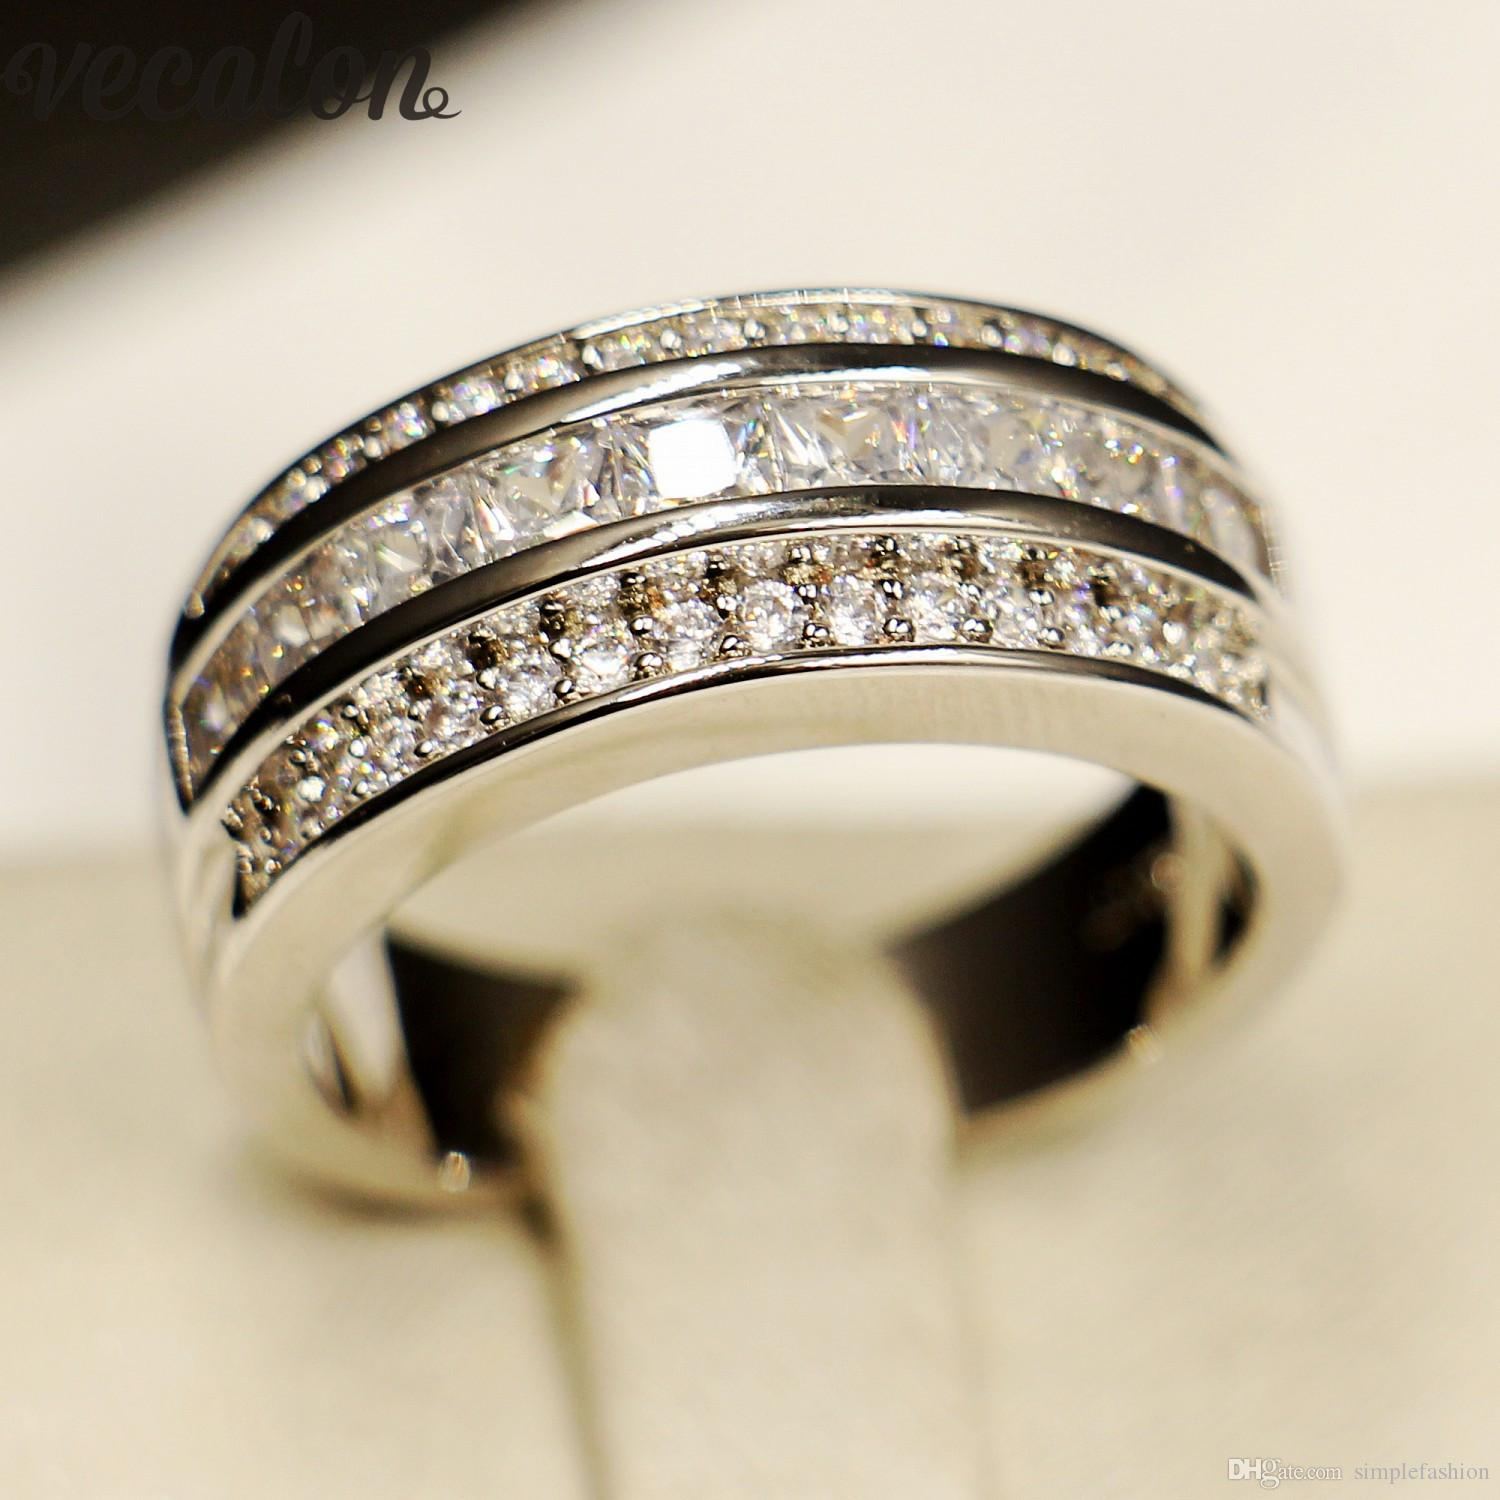 It is just a picture of 44 Vecalon Princess Cut 44A Zircon Cz Wedding Band Ring For Men 44KT White Gold Filled Male Engagement Band Ring Sz 44 44 From Simplefashion, $44.044